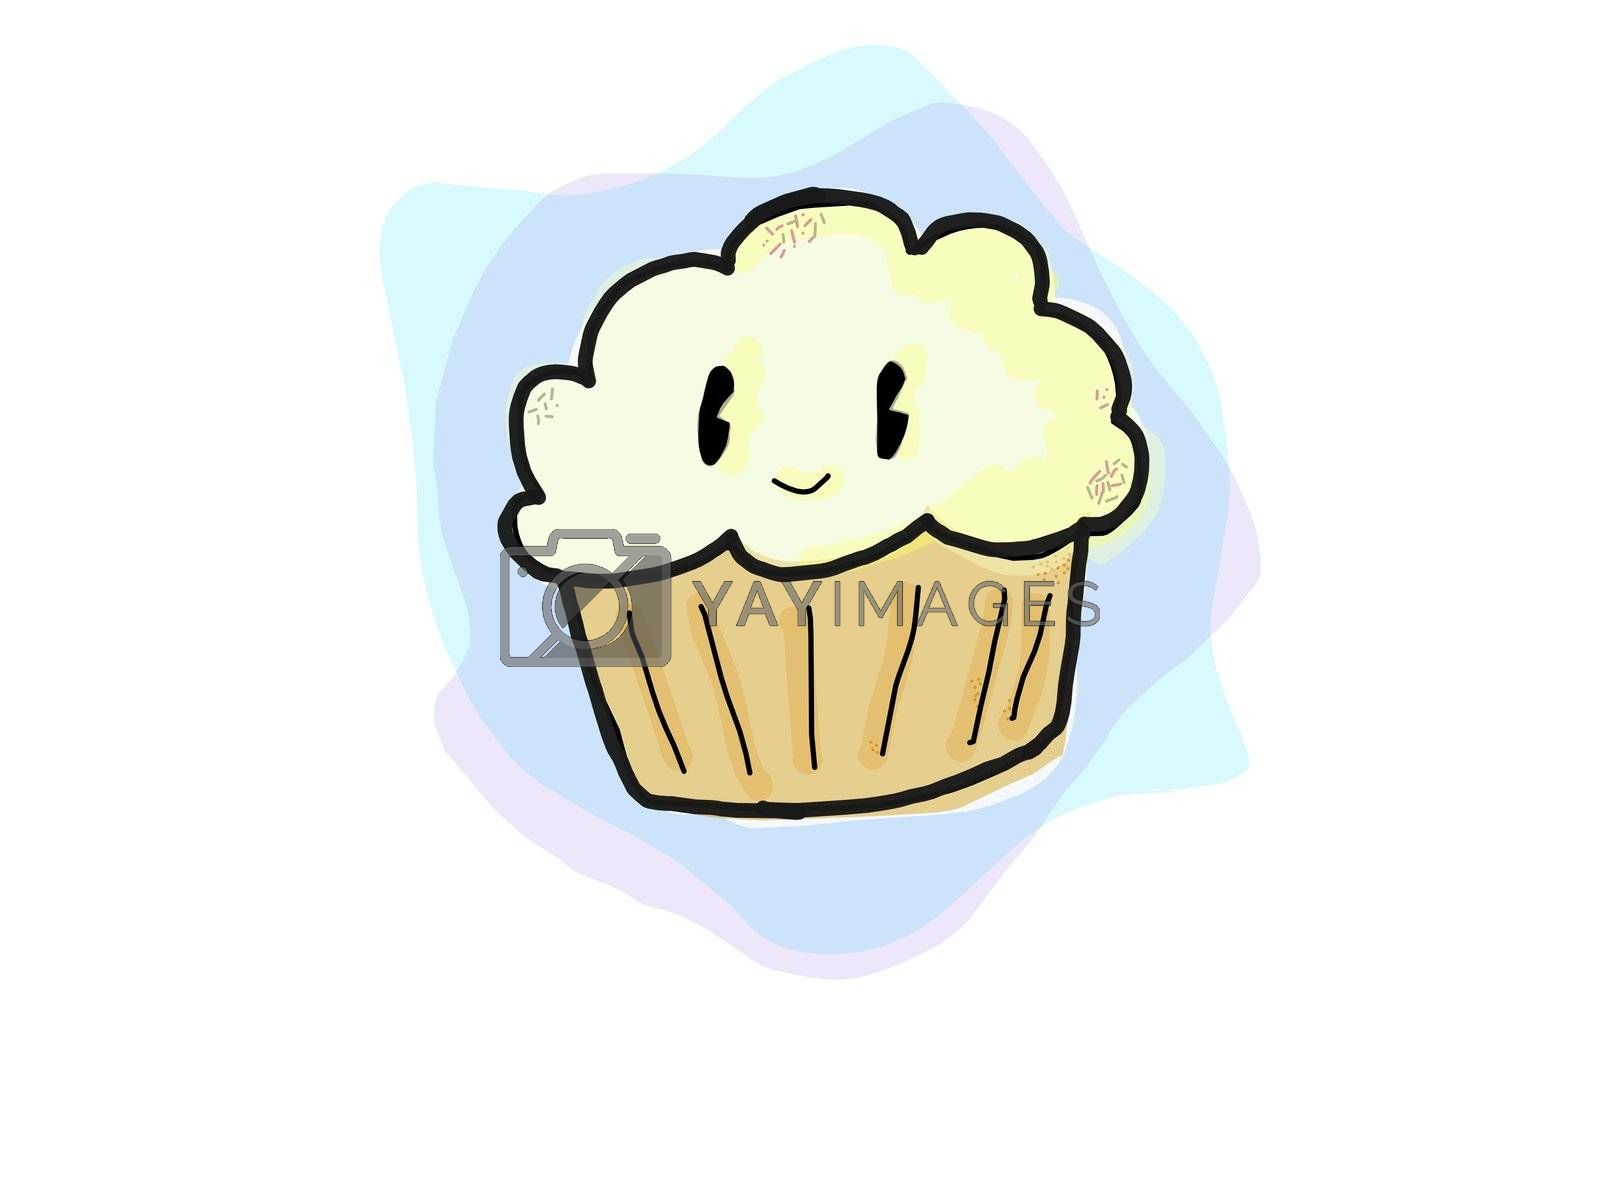 A cute kawaii illustration of a buttercream frosting cupcake.